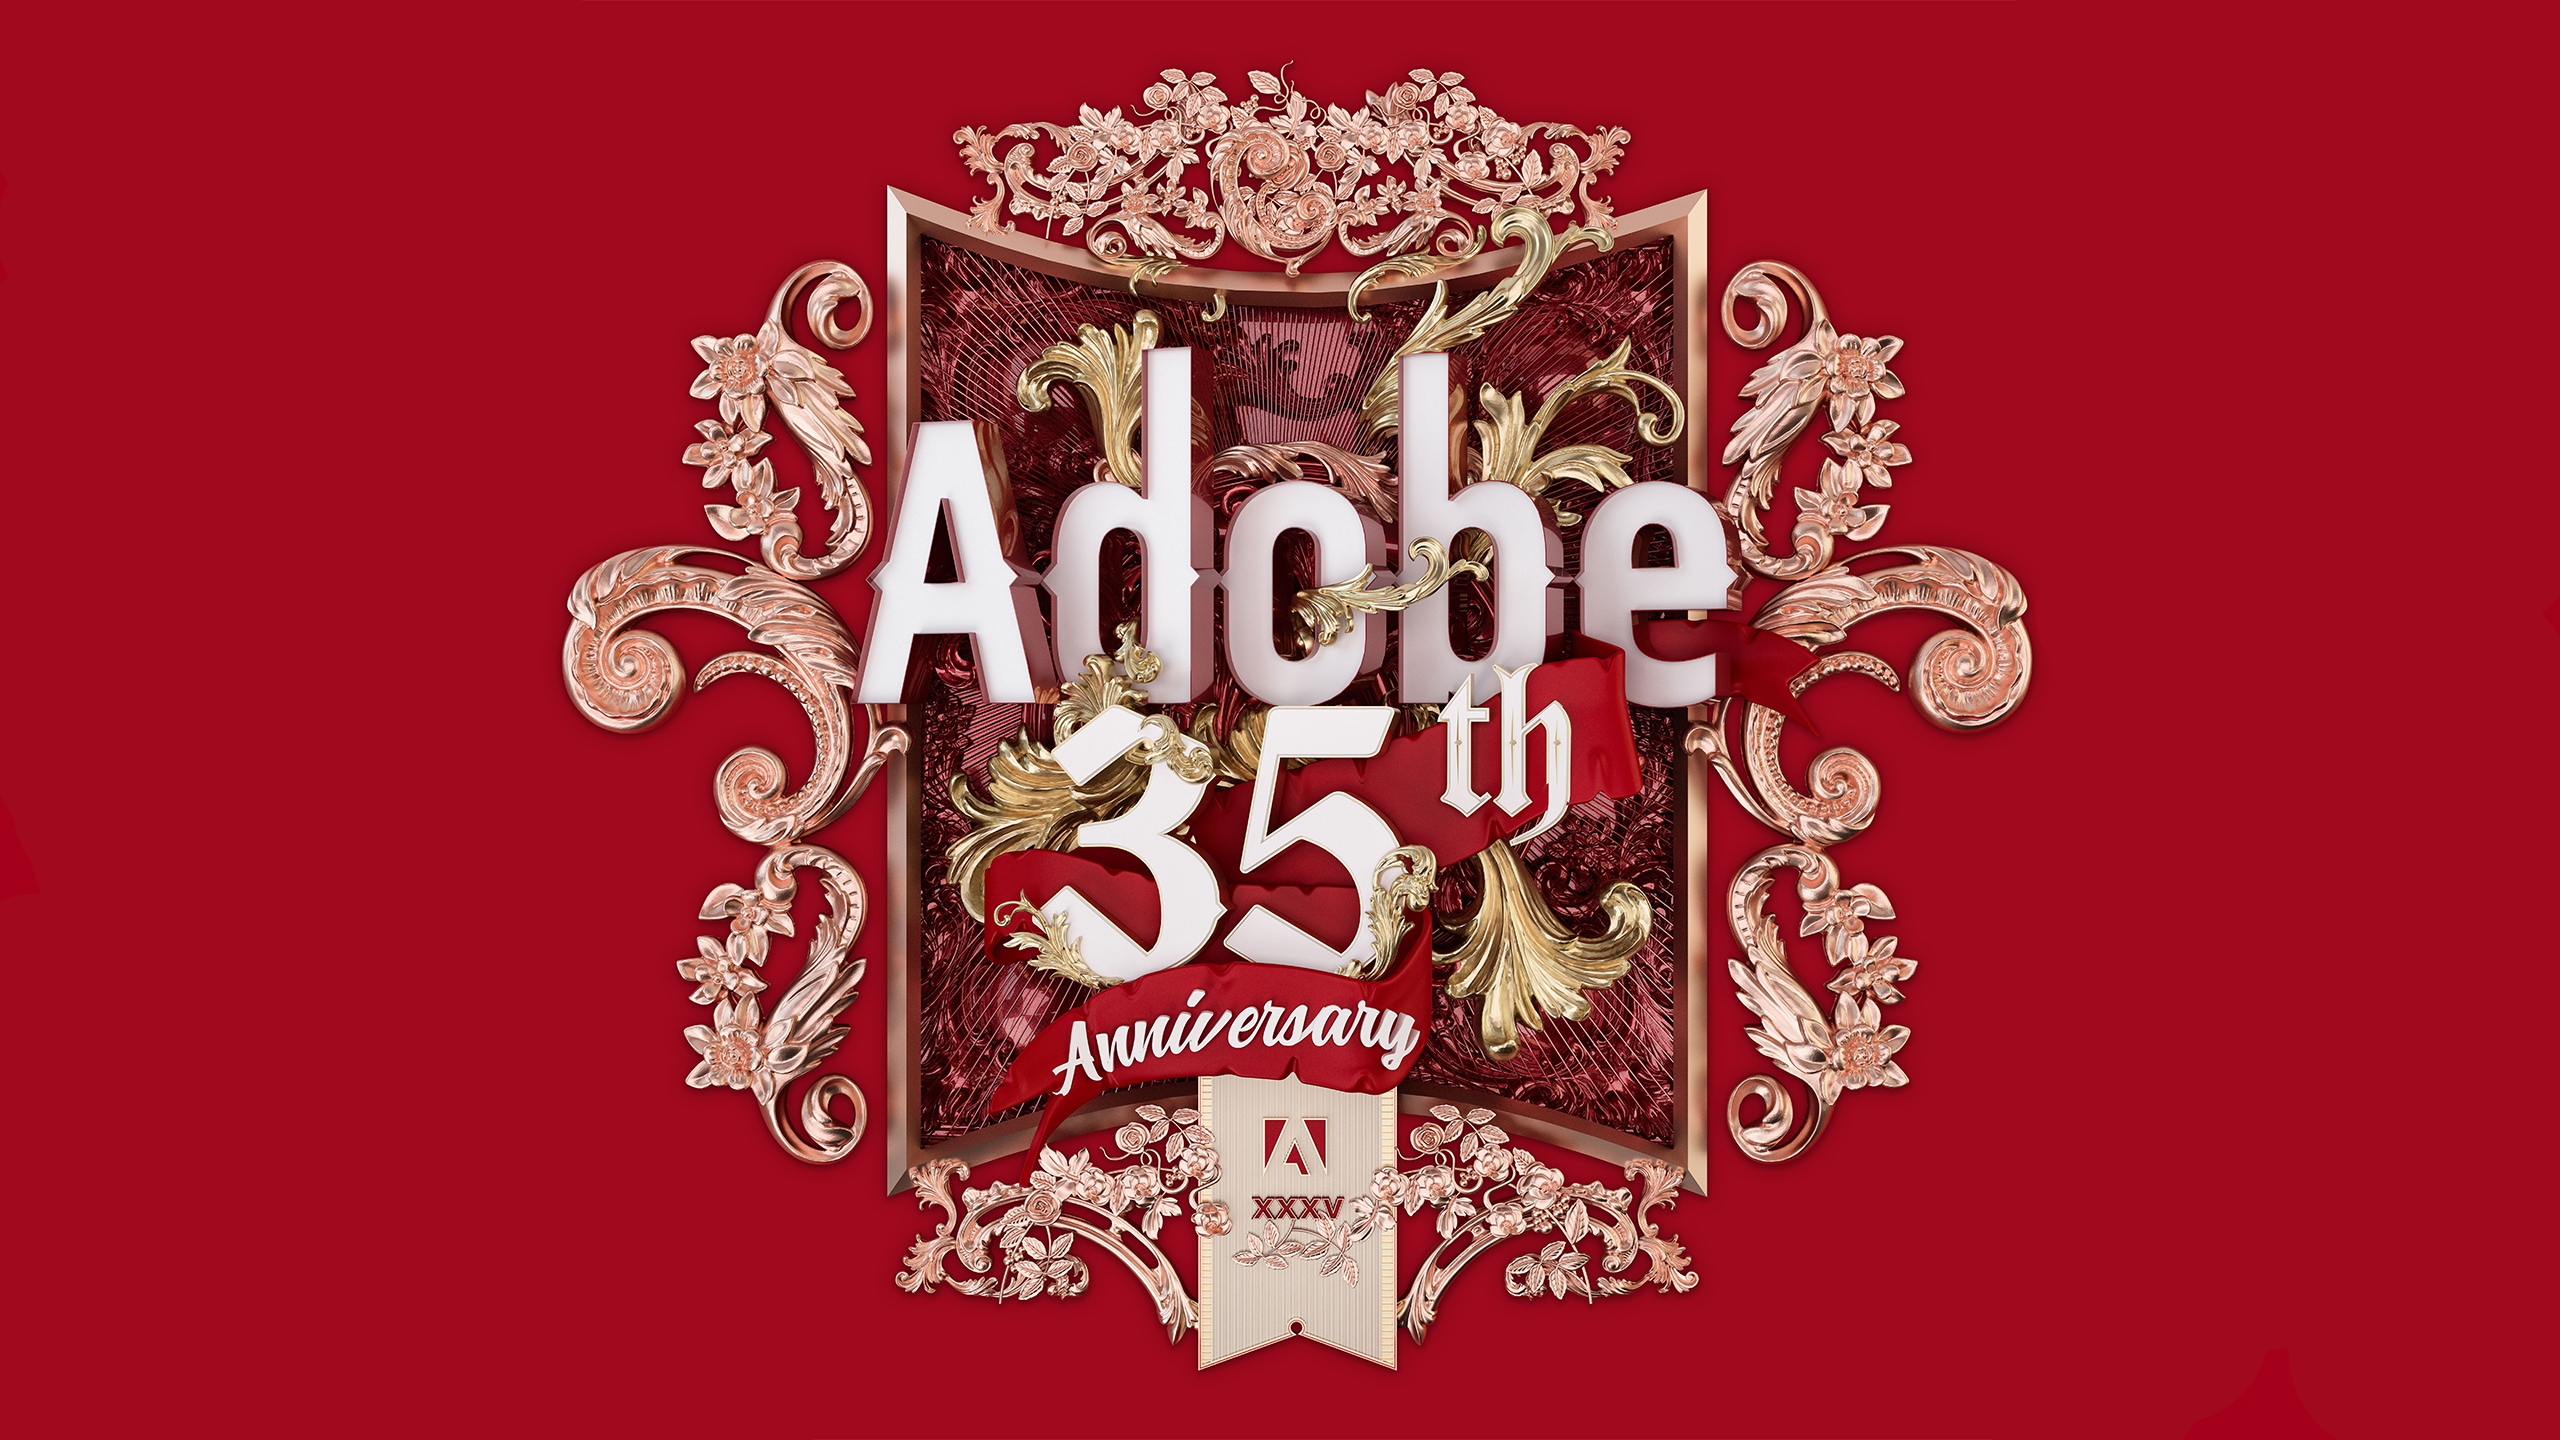 Adobe_35thAnniversary_Large